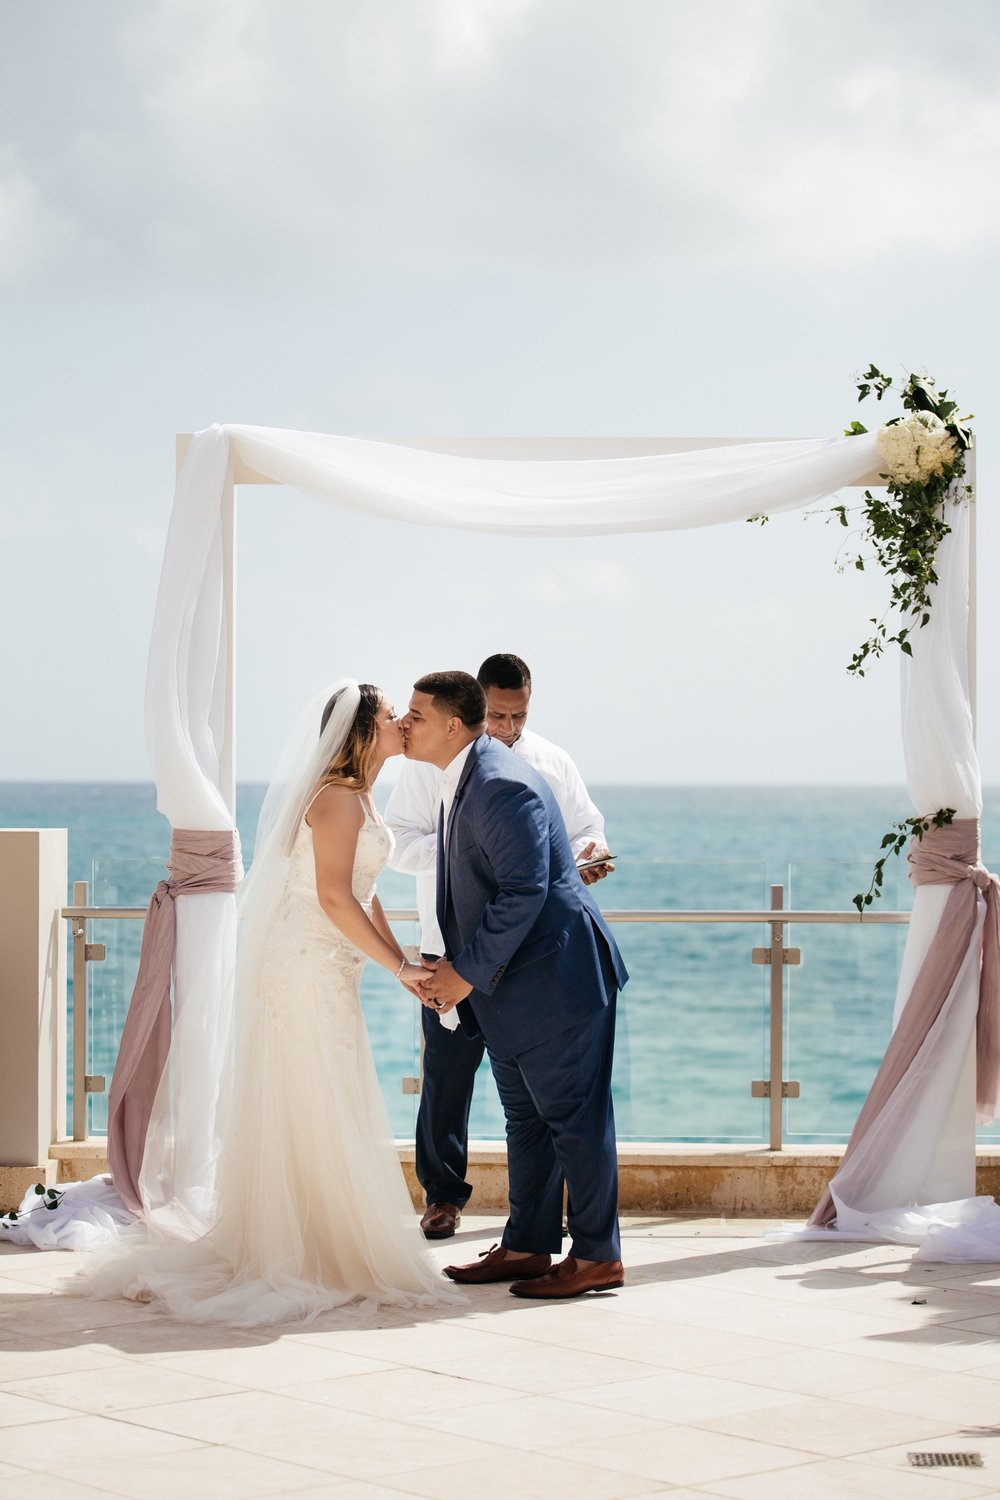 Le Cape Weddings - Destination Wedding in Puerto Rico - Condado Vanderbuilt Wedding -6689.jpg